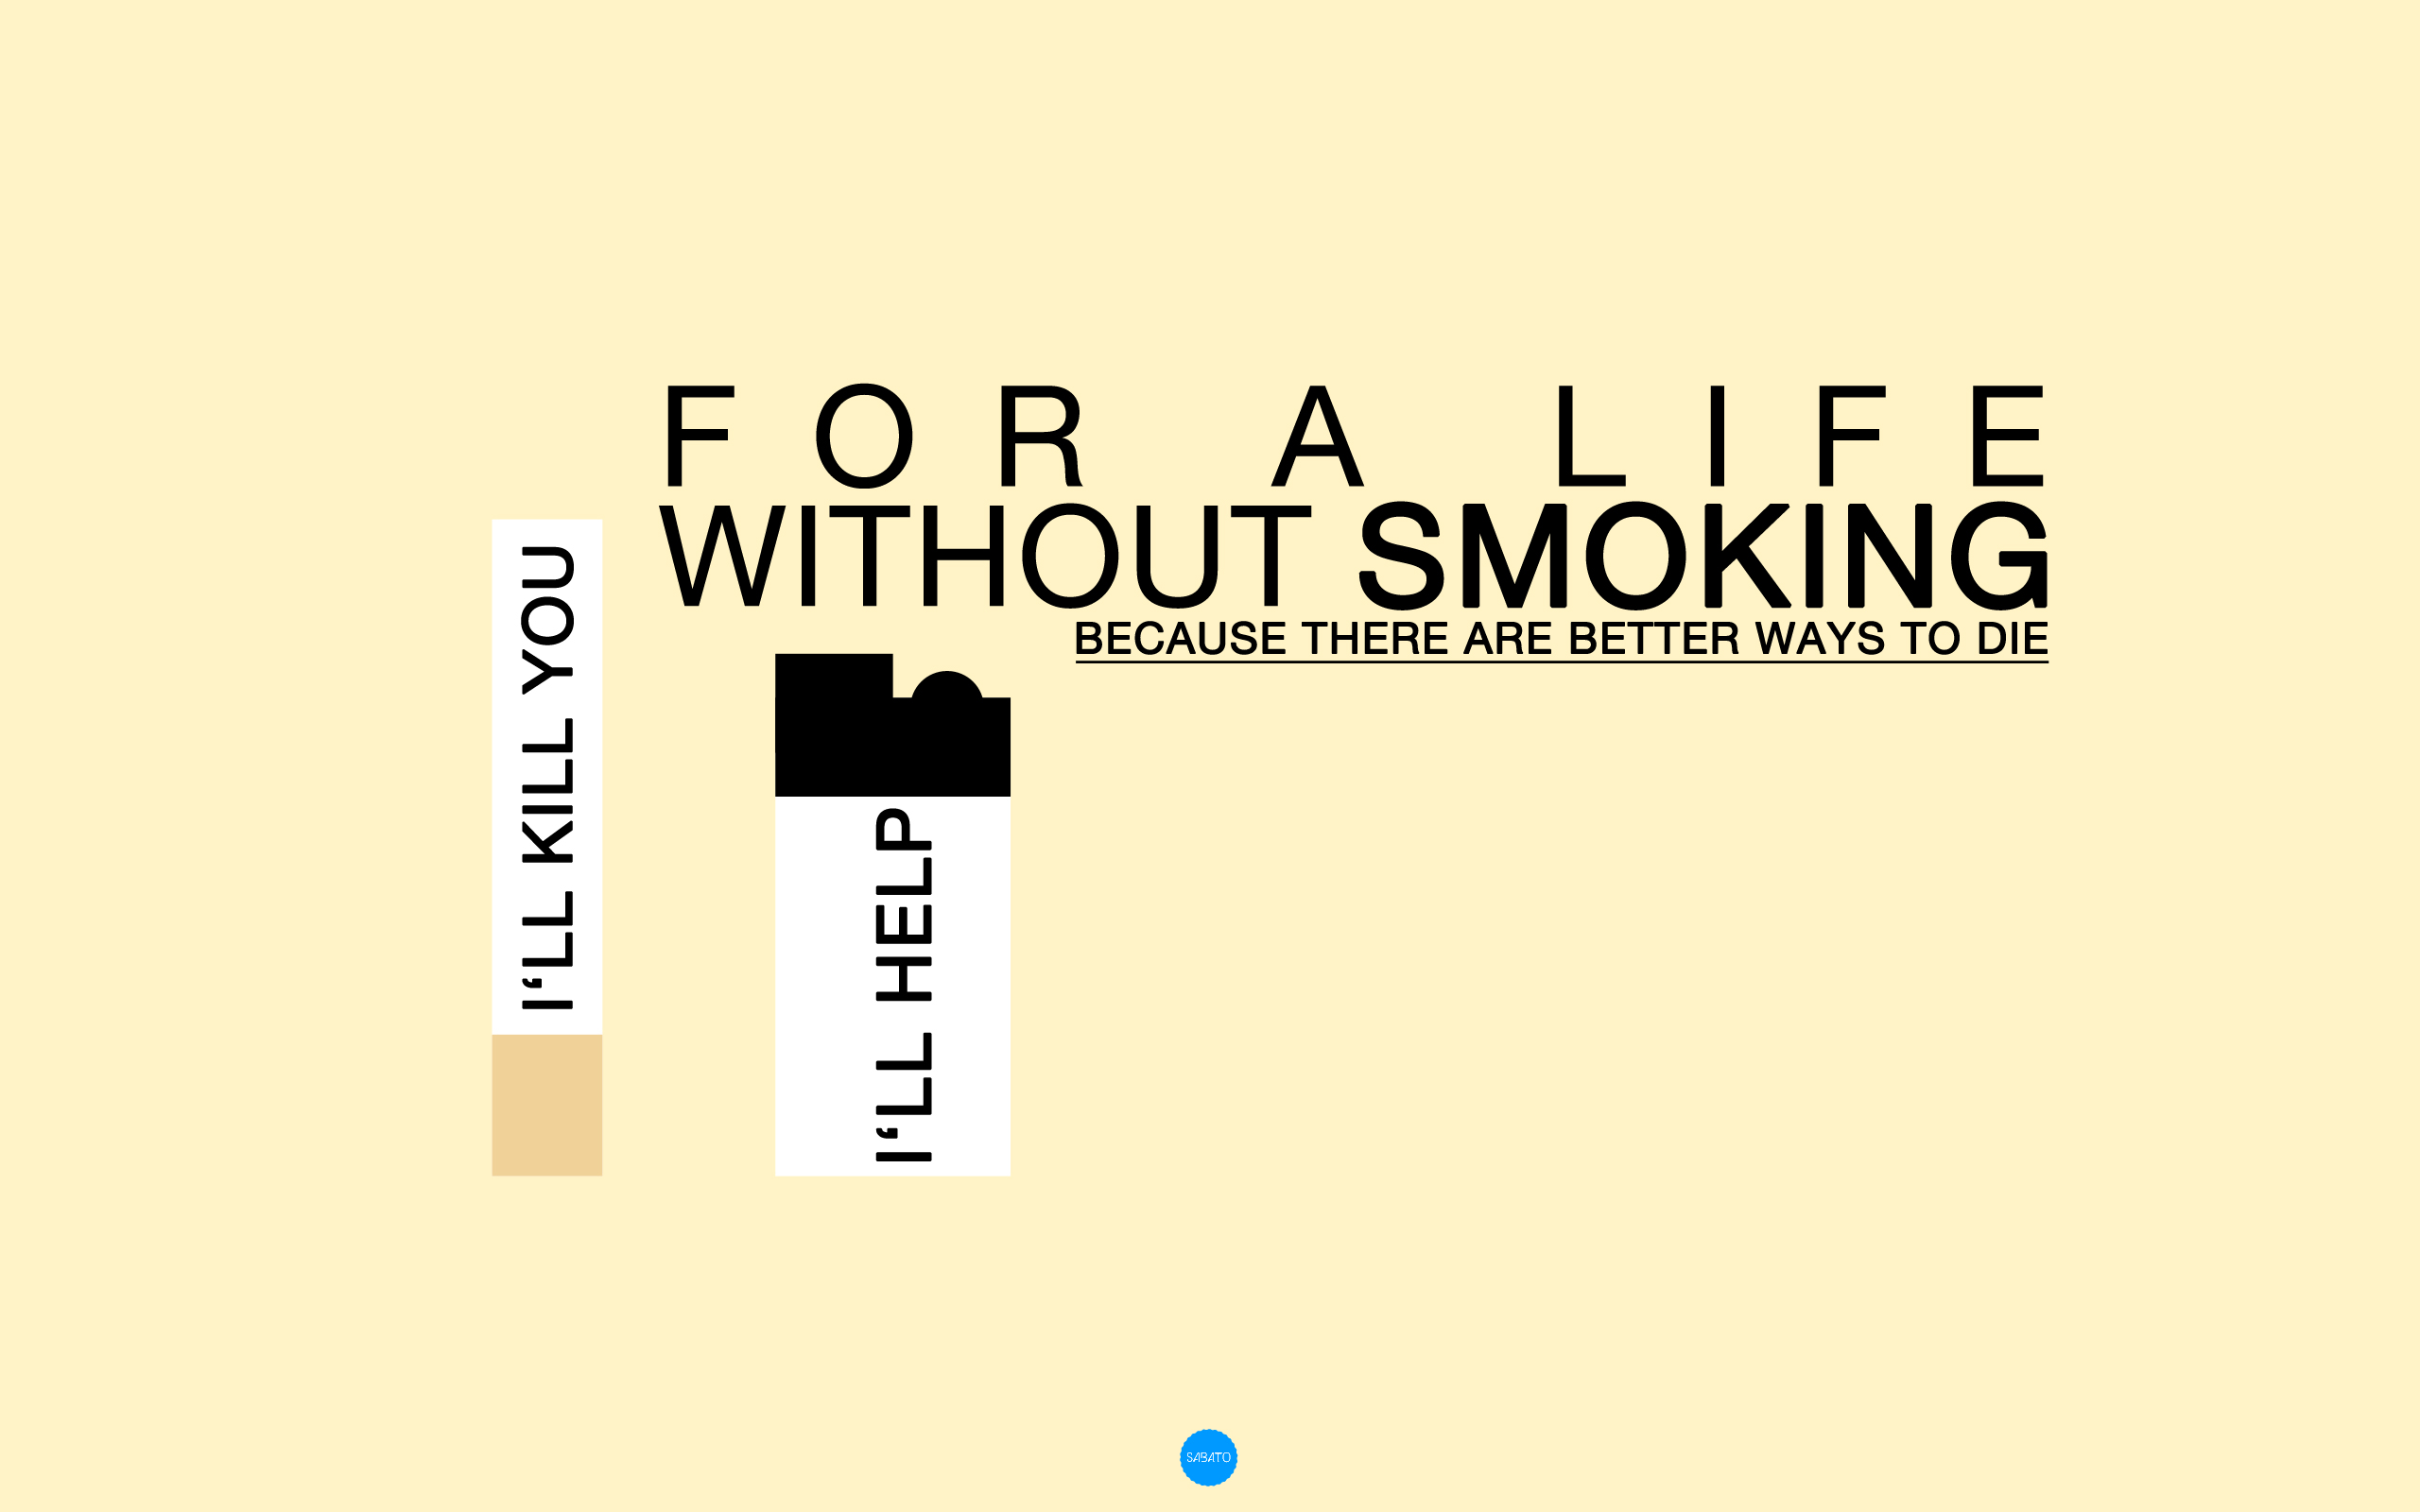 Without smoking by LilianaSabato